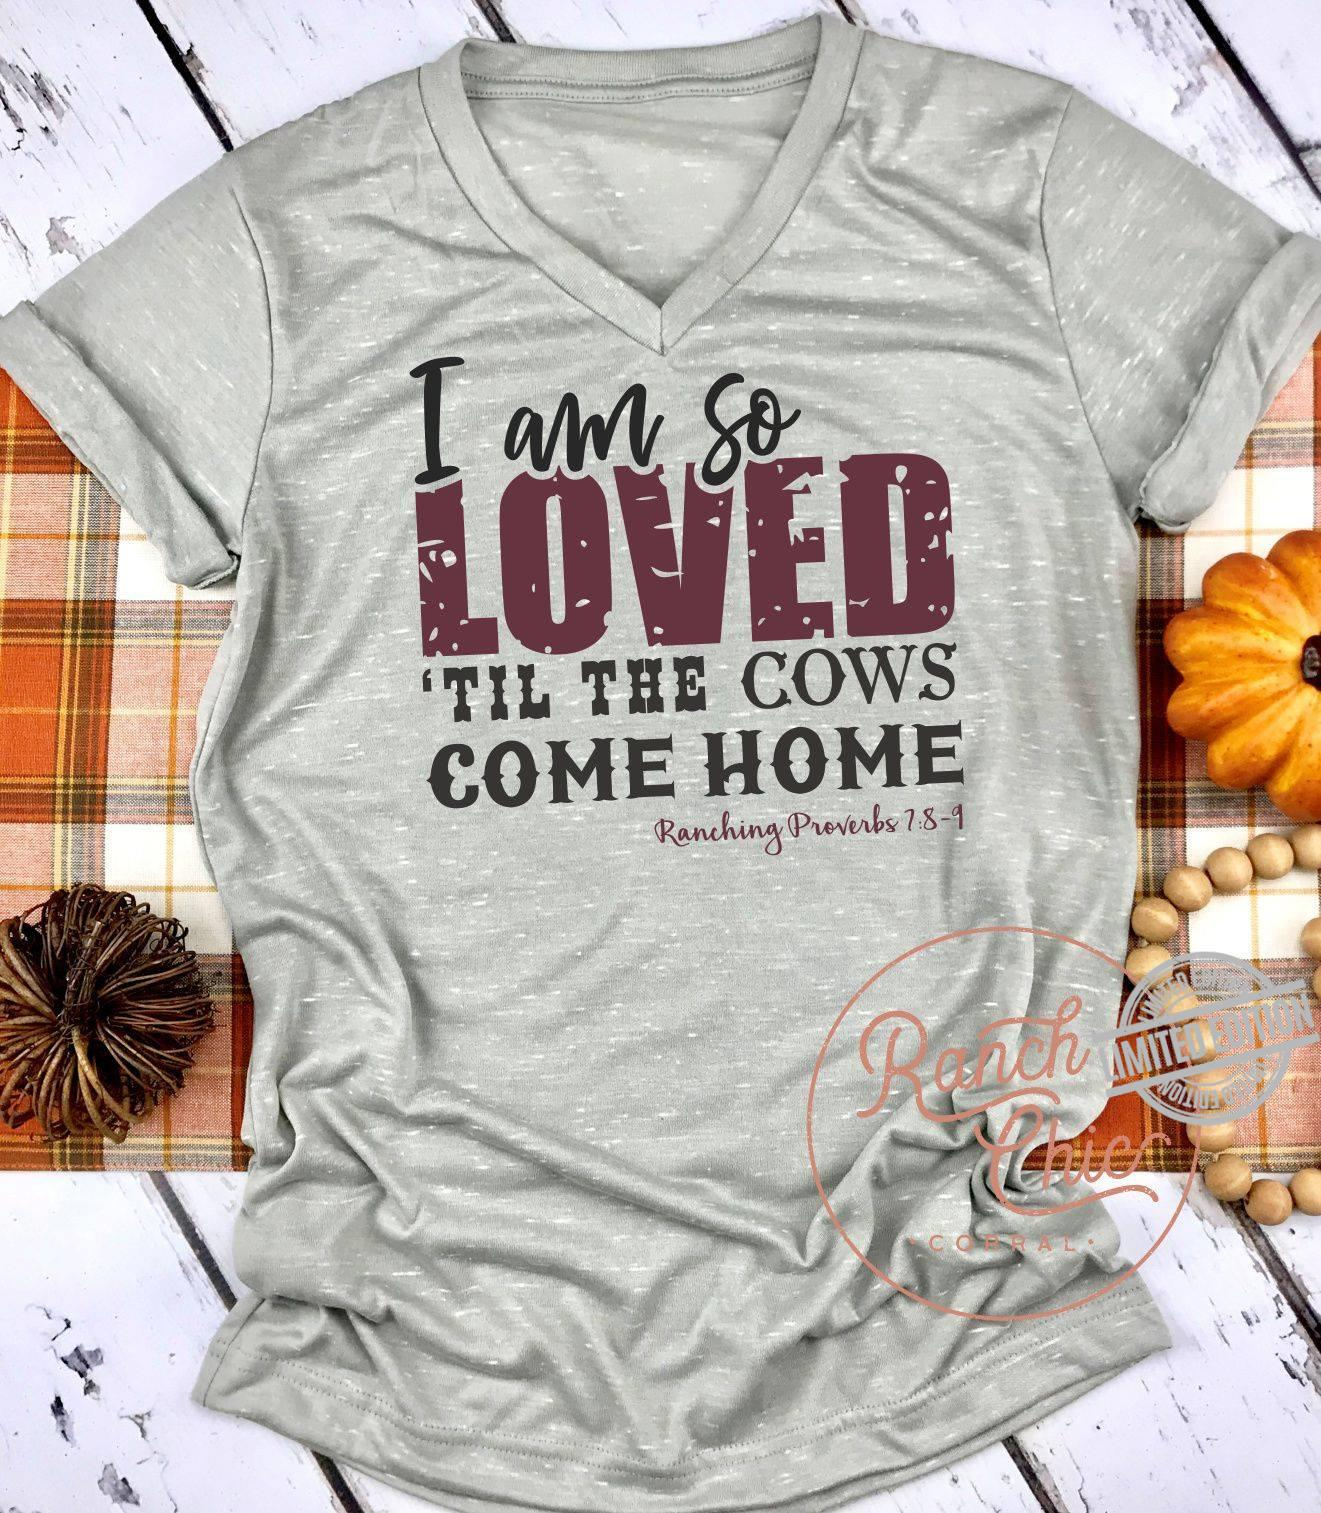 I Am So Loved Til The Cows Come Home Ranching Proverbs Shirt